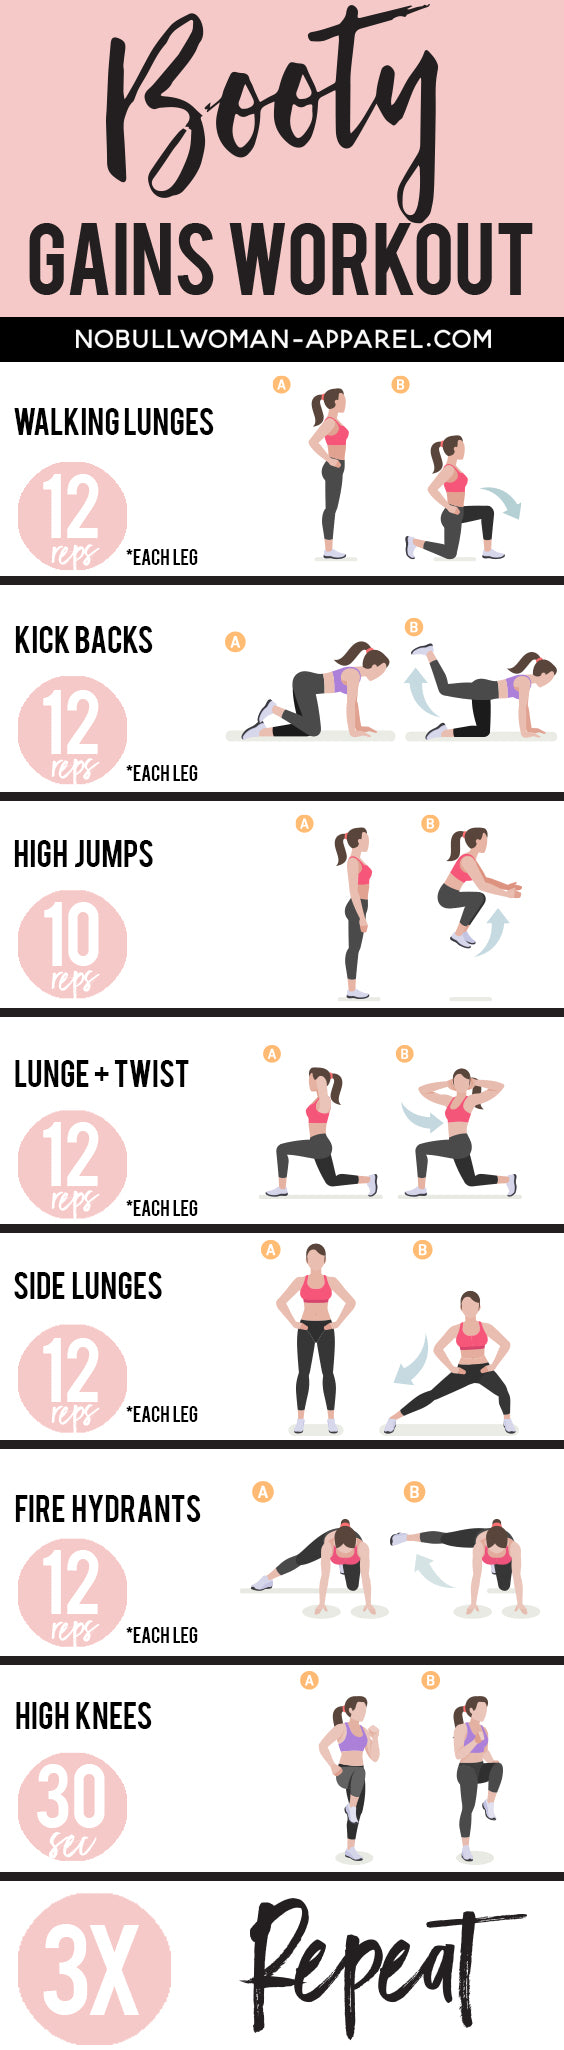 Booty Gains - Printable Workout